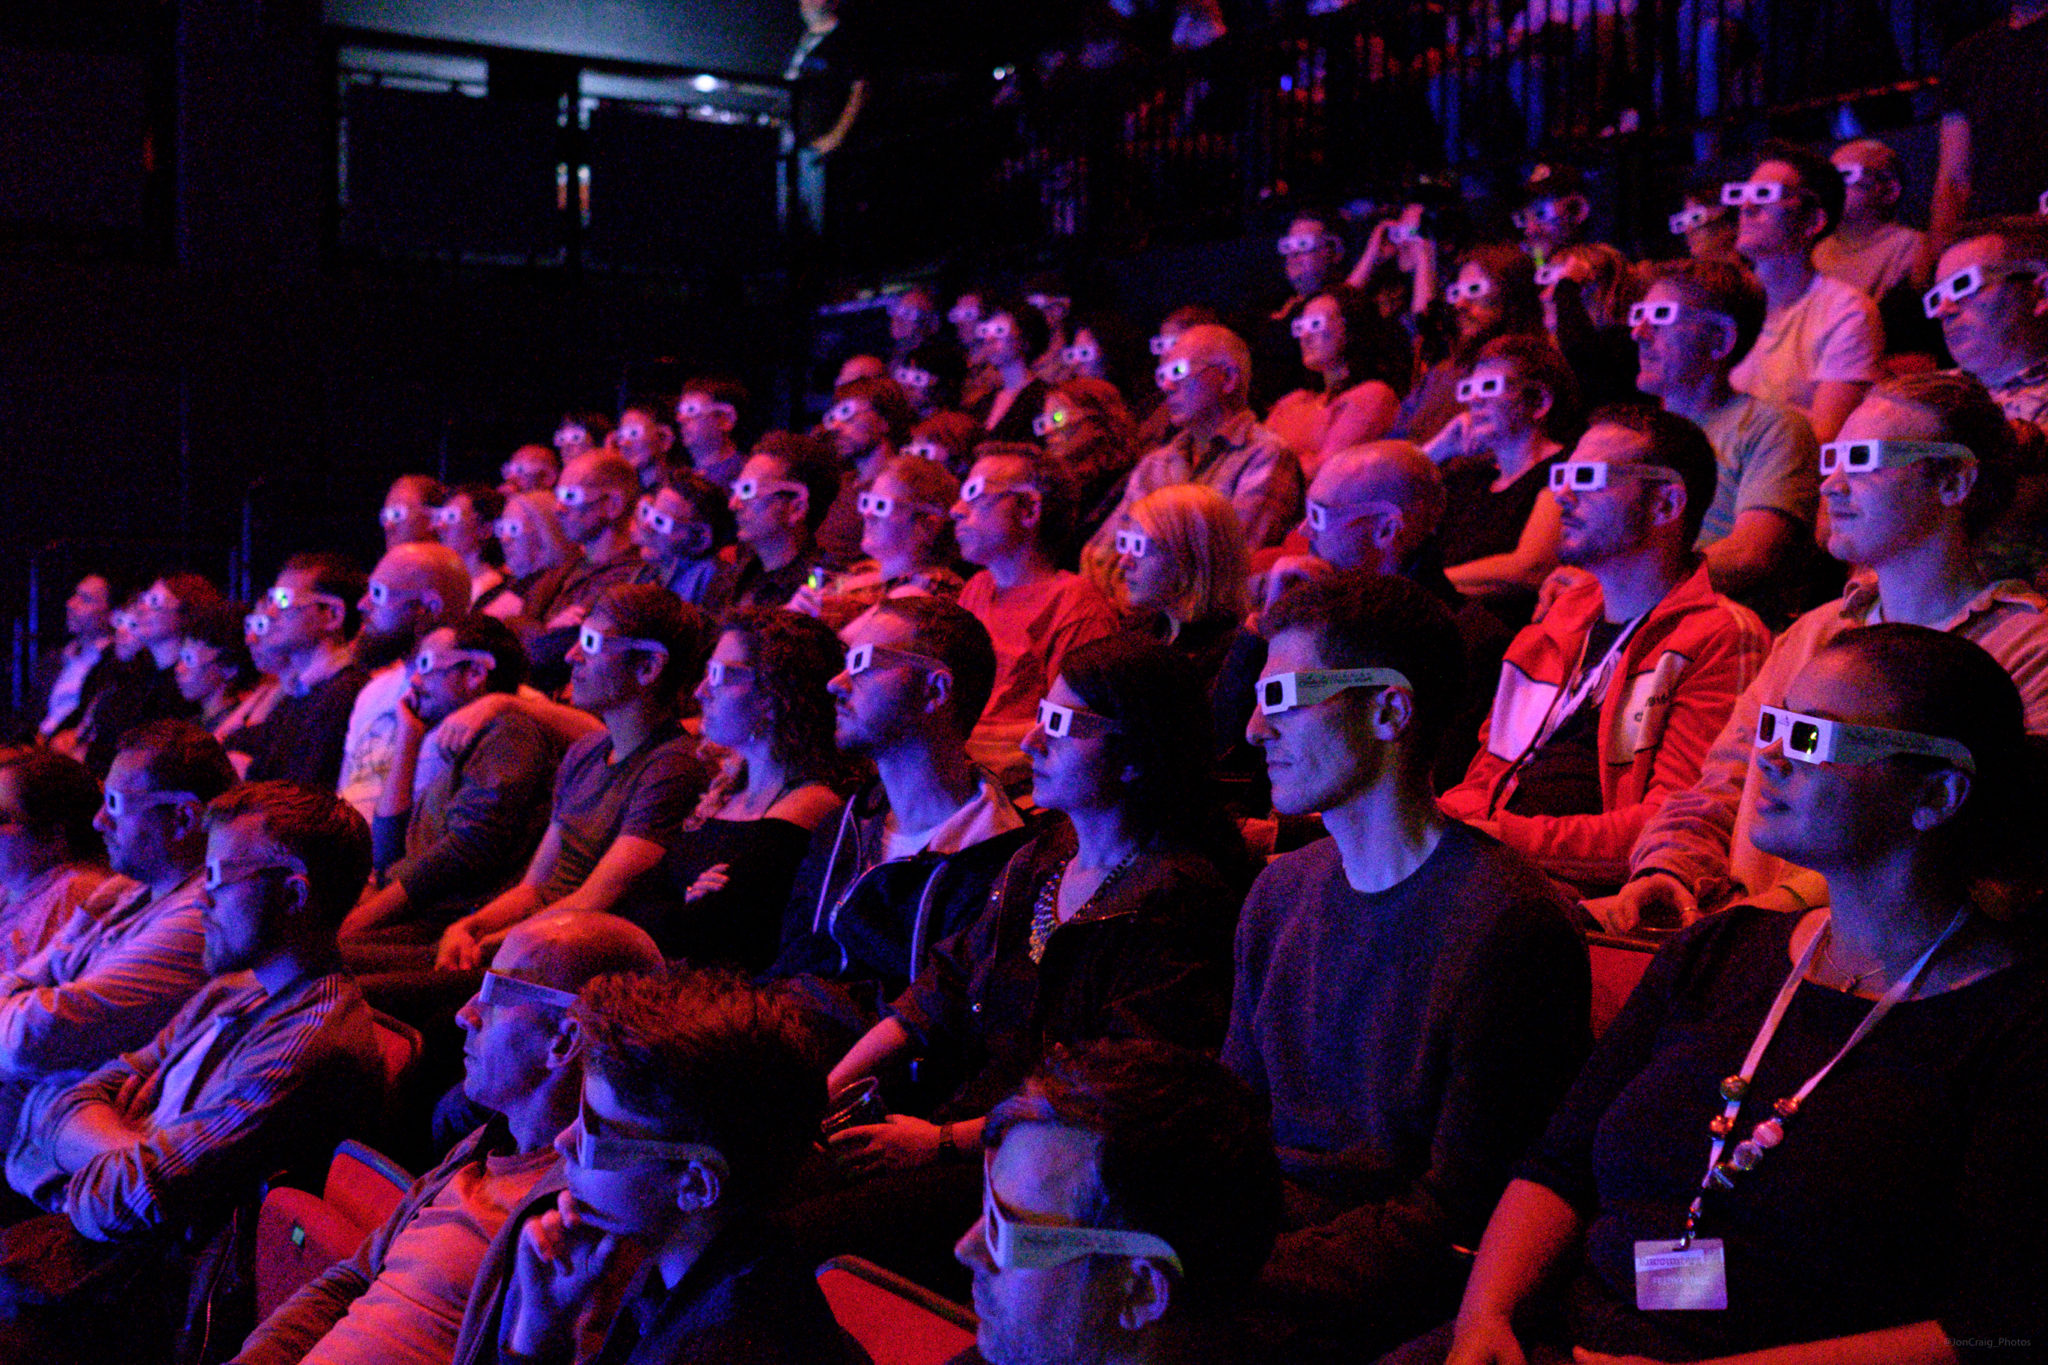 Audiences view 3D at Encounters 2017 (c) Jon Craig